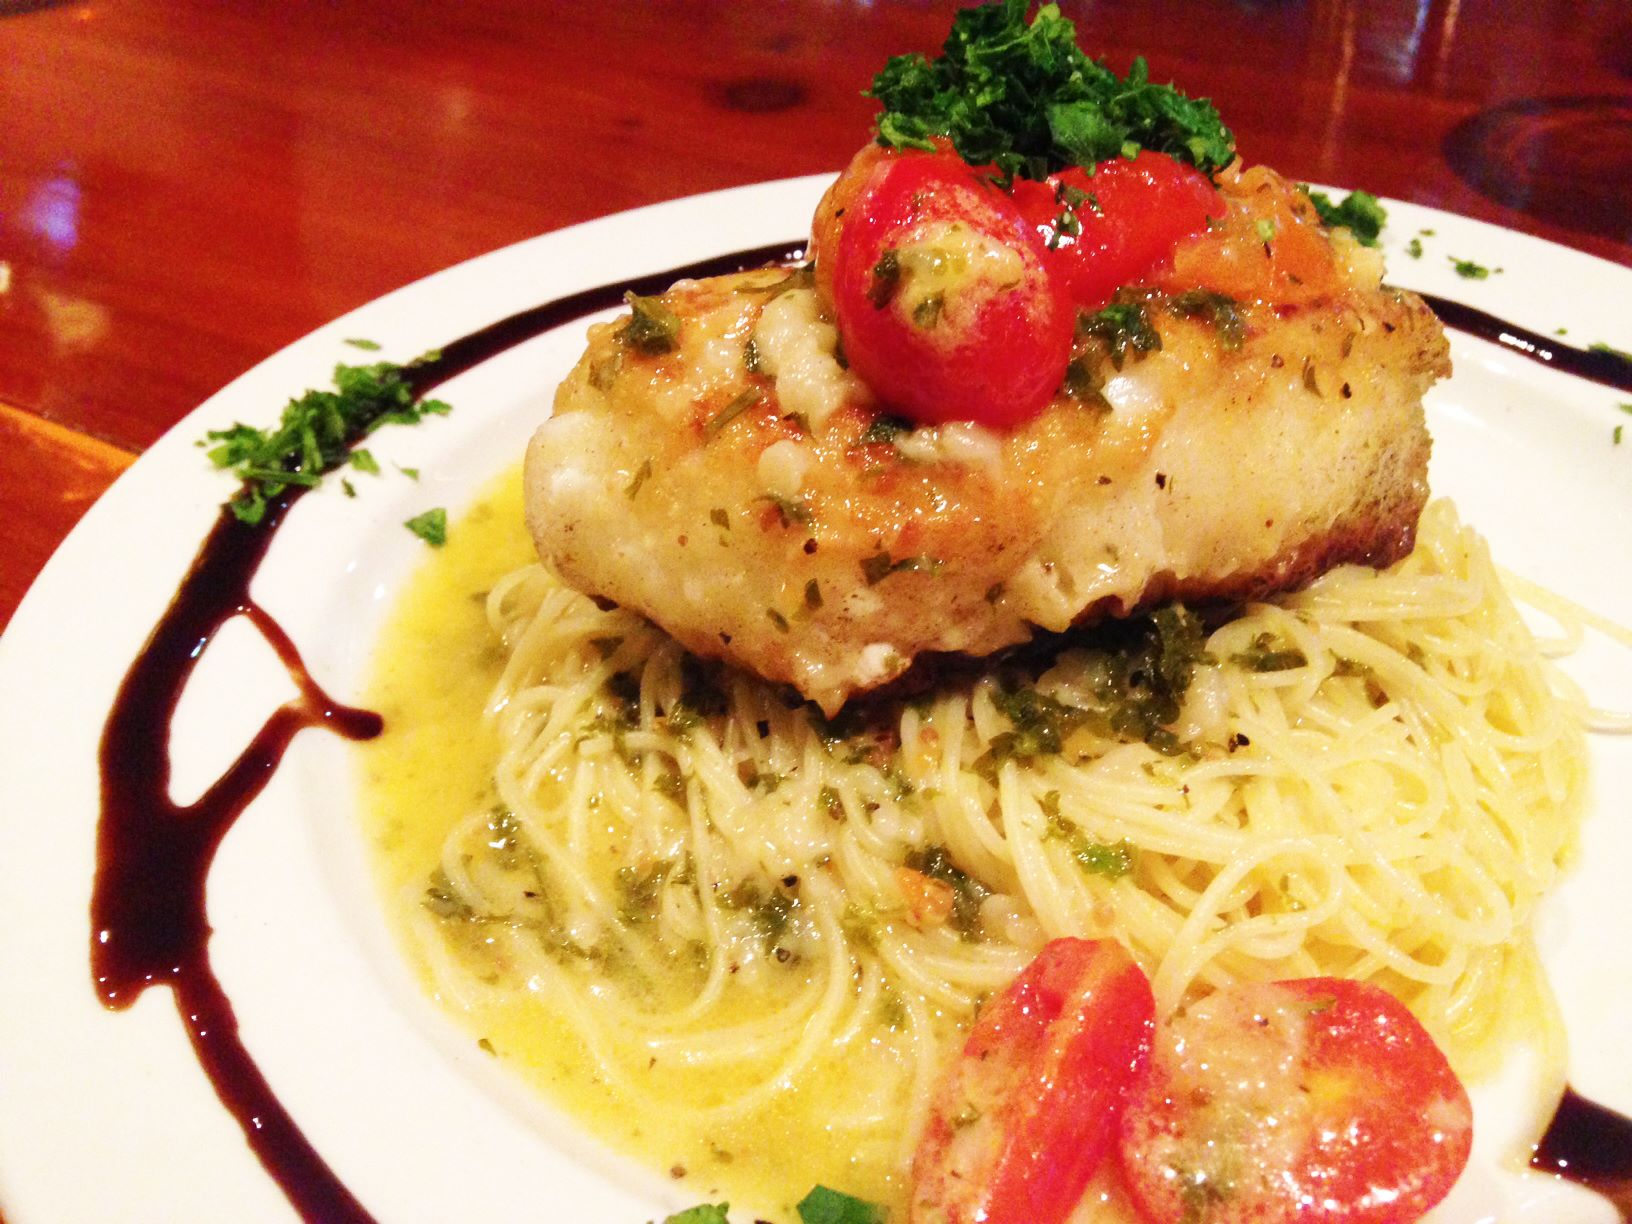 Fresh chilean sea bass over angel hair pasta in lemon butter sauce.